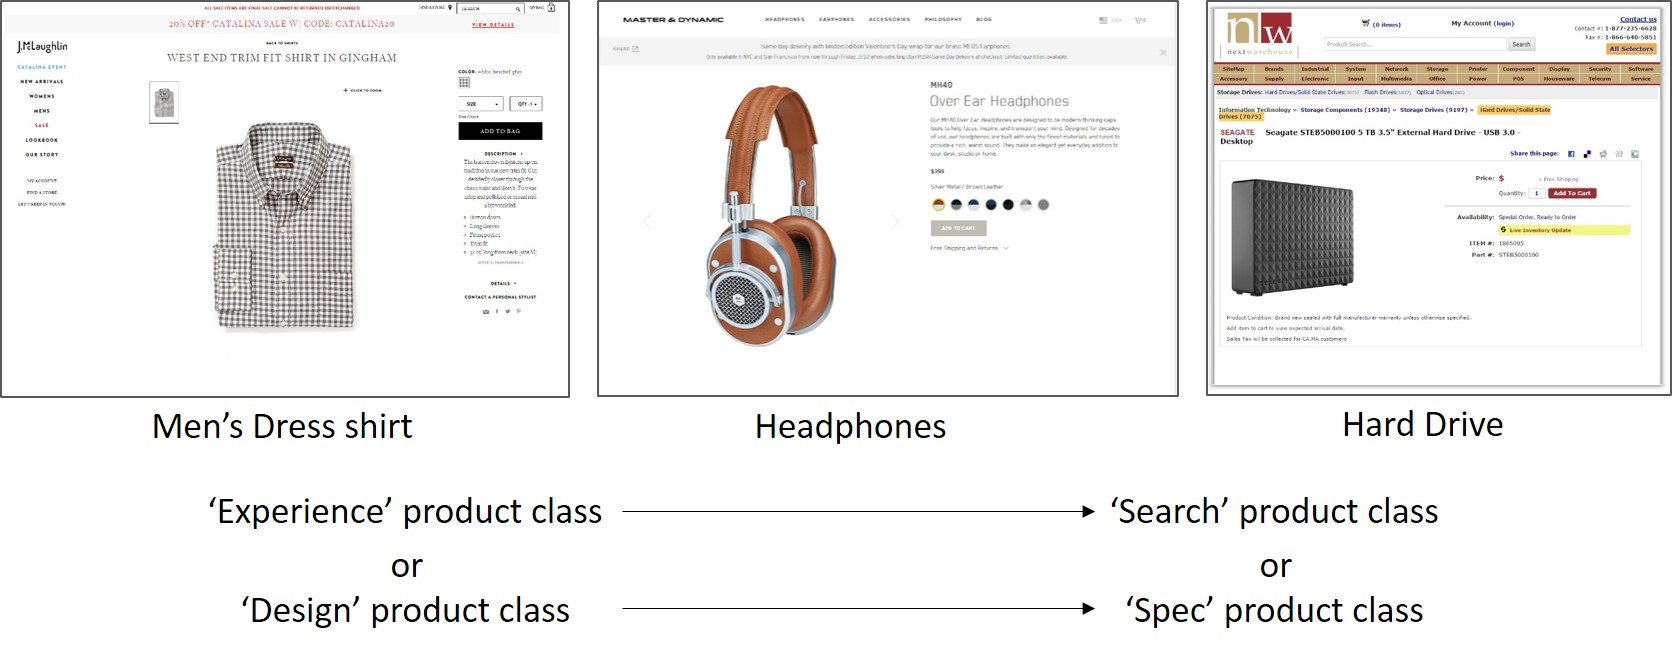 How Product Image Size Affects Attention and Engagement